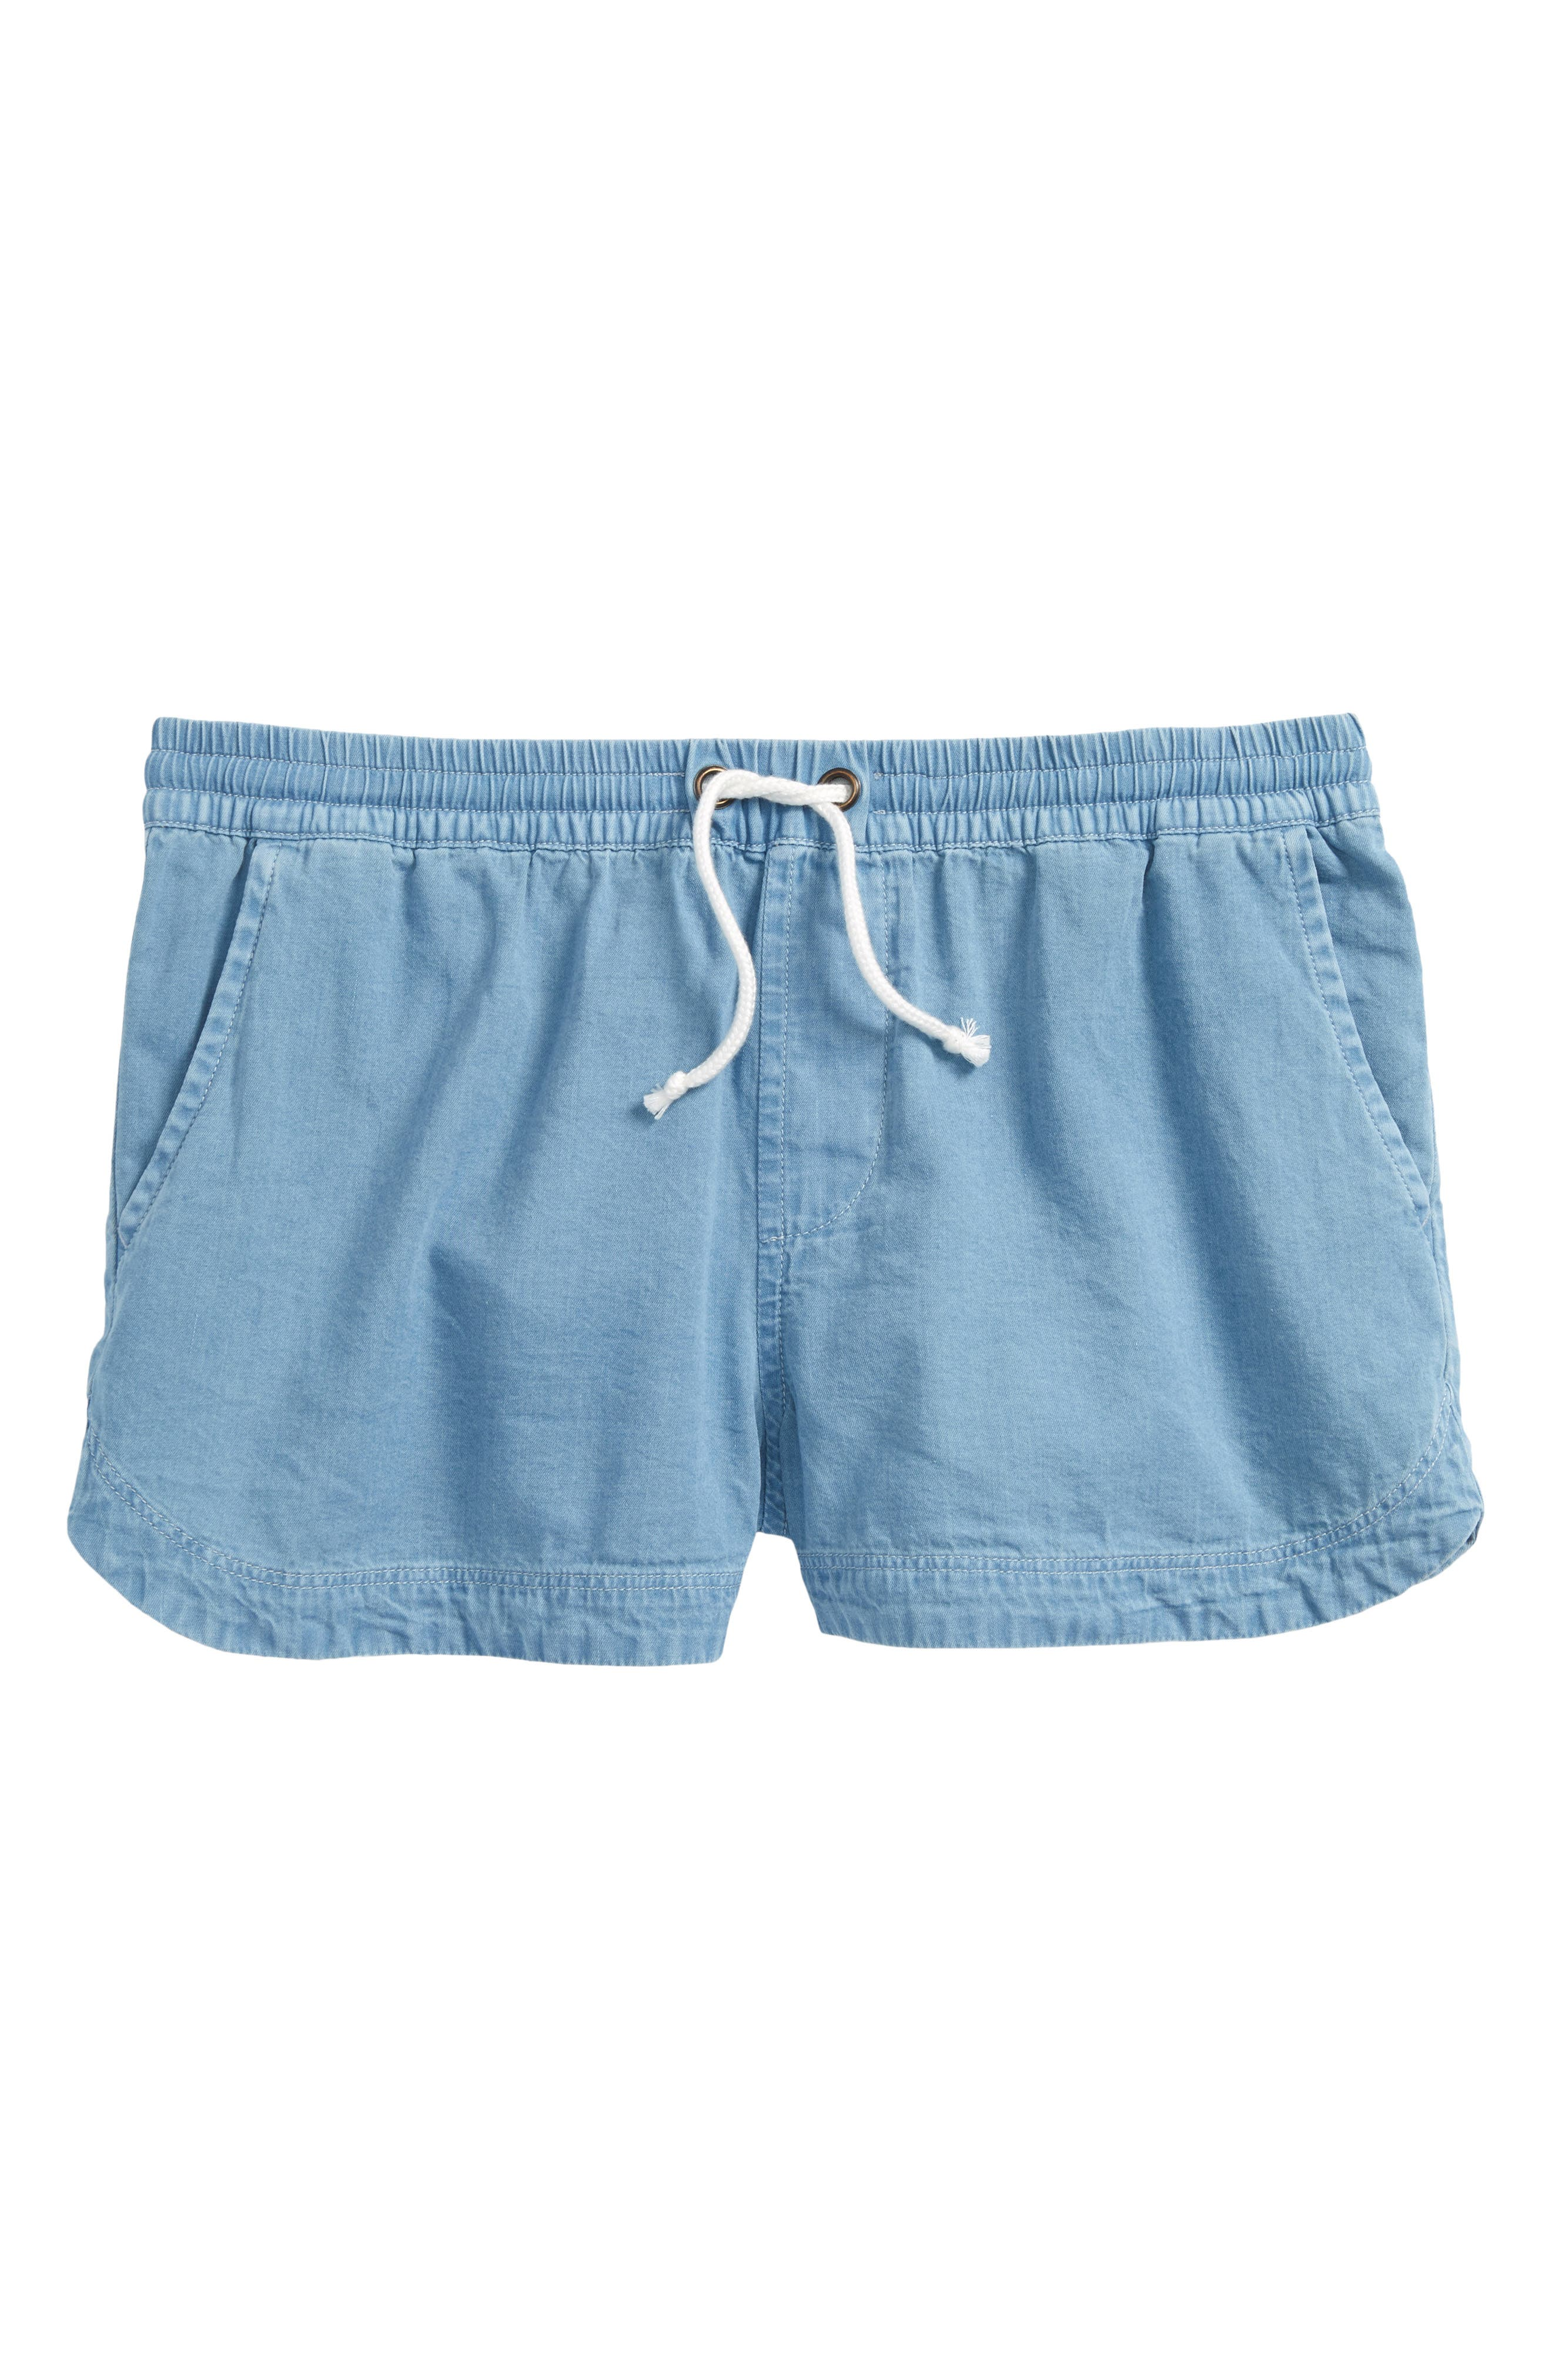 Easy Shorts,                         Main,                         color, Blue Sky Wash